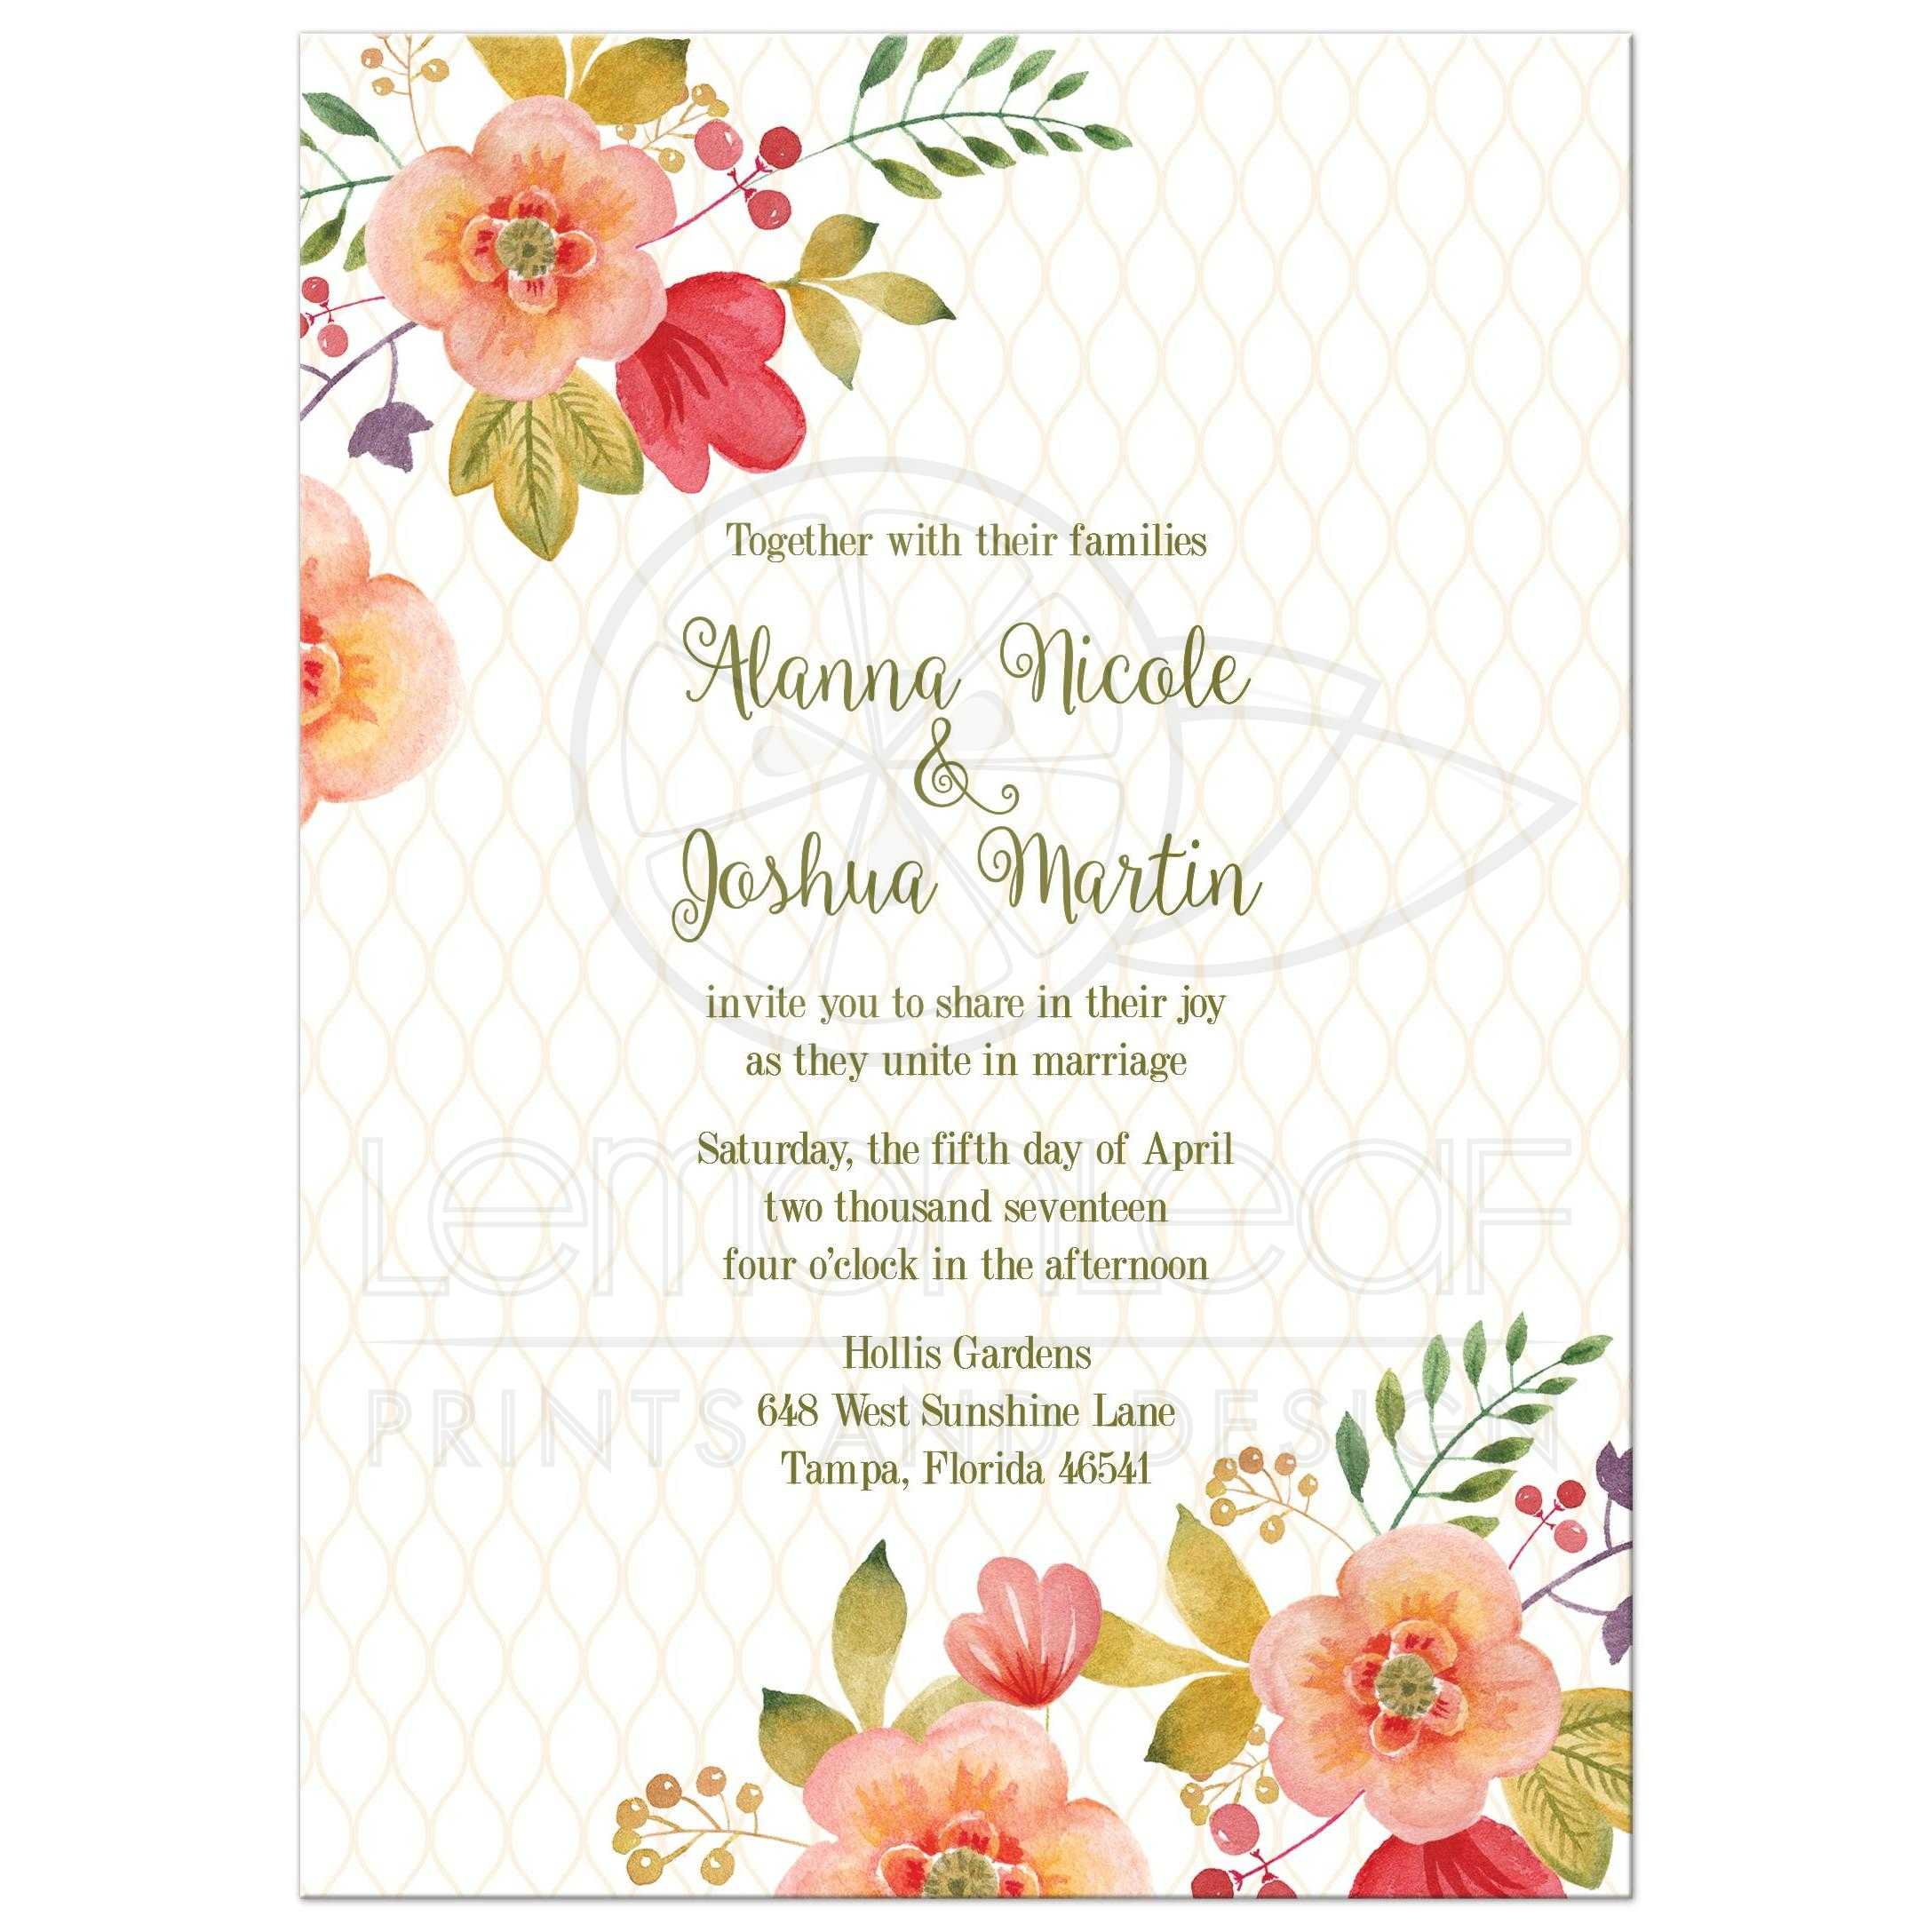 Coral And Gold Wedding Invitations with adorable invitation sample